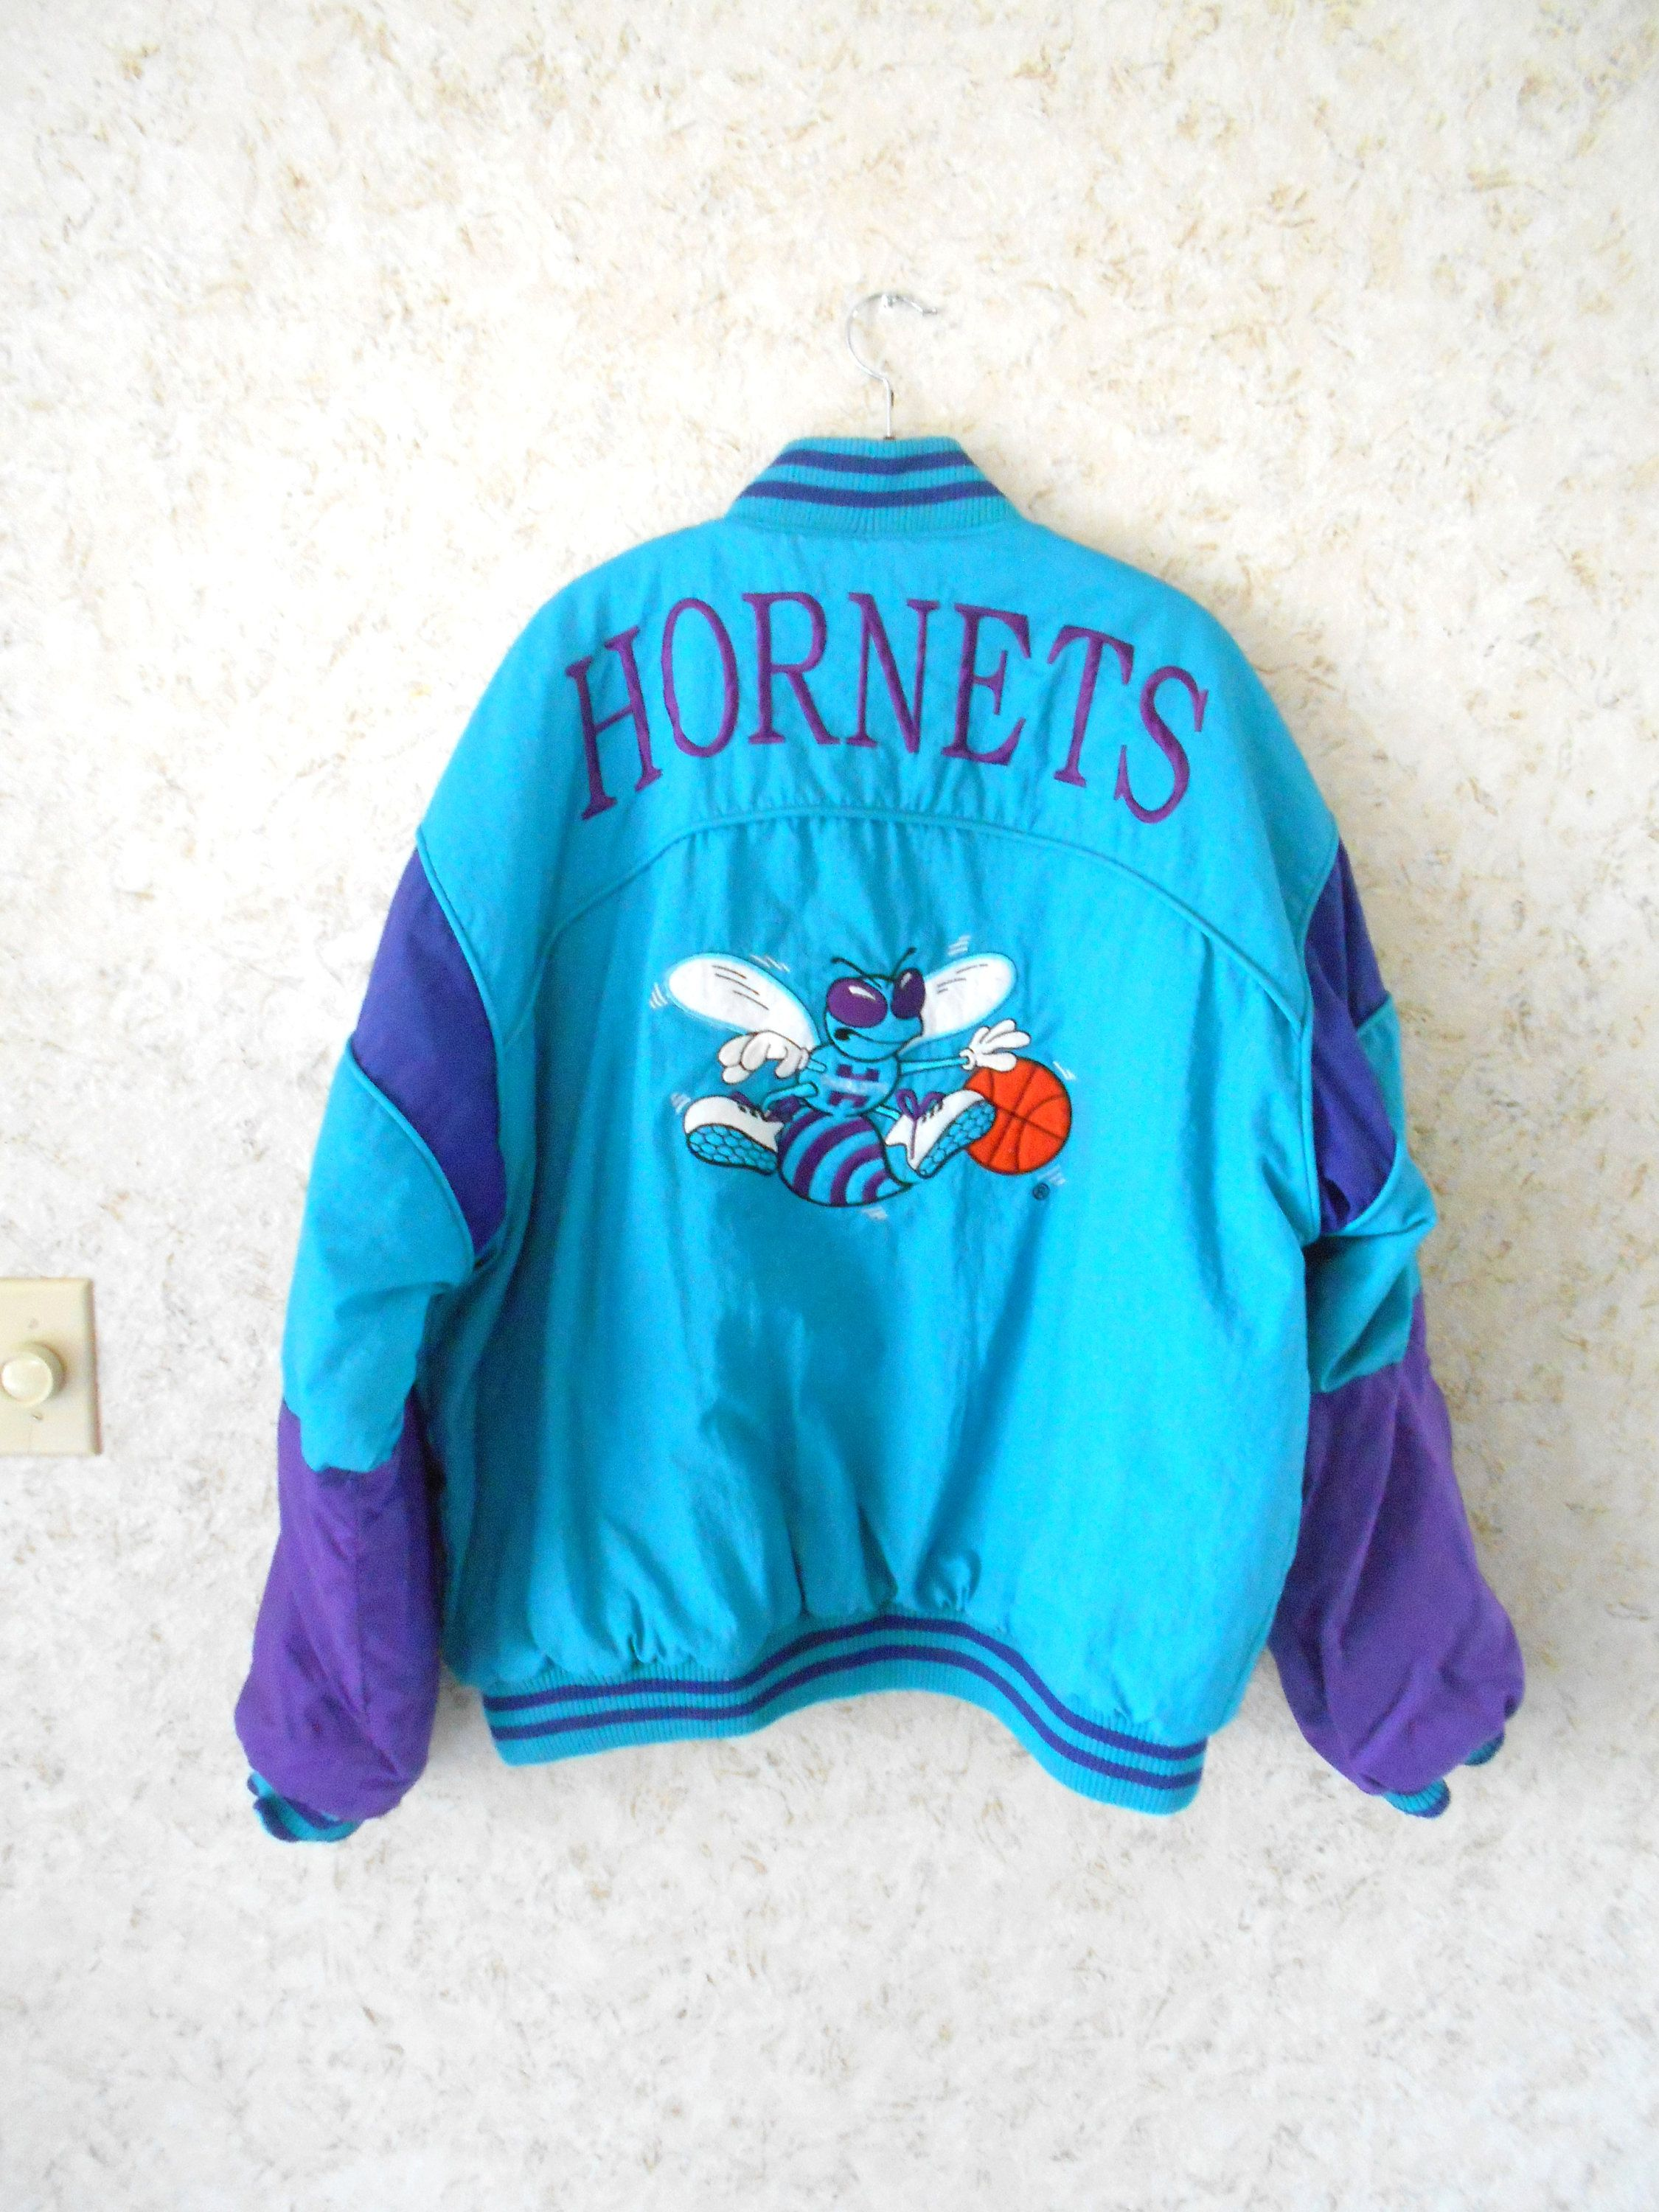 7d014b52f0d Vintage 90s Charlotte Hornets NBA Winter Jacket Coat Rare Campri Zippered  Jacket Teal Purple Retro Hip Hop Embroidered Logo Mens Large by  CoolDogVintage on ...